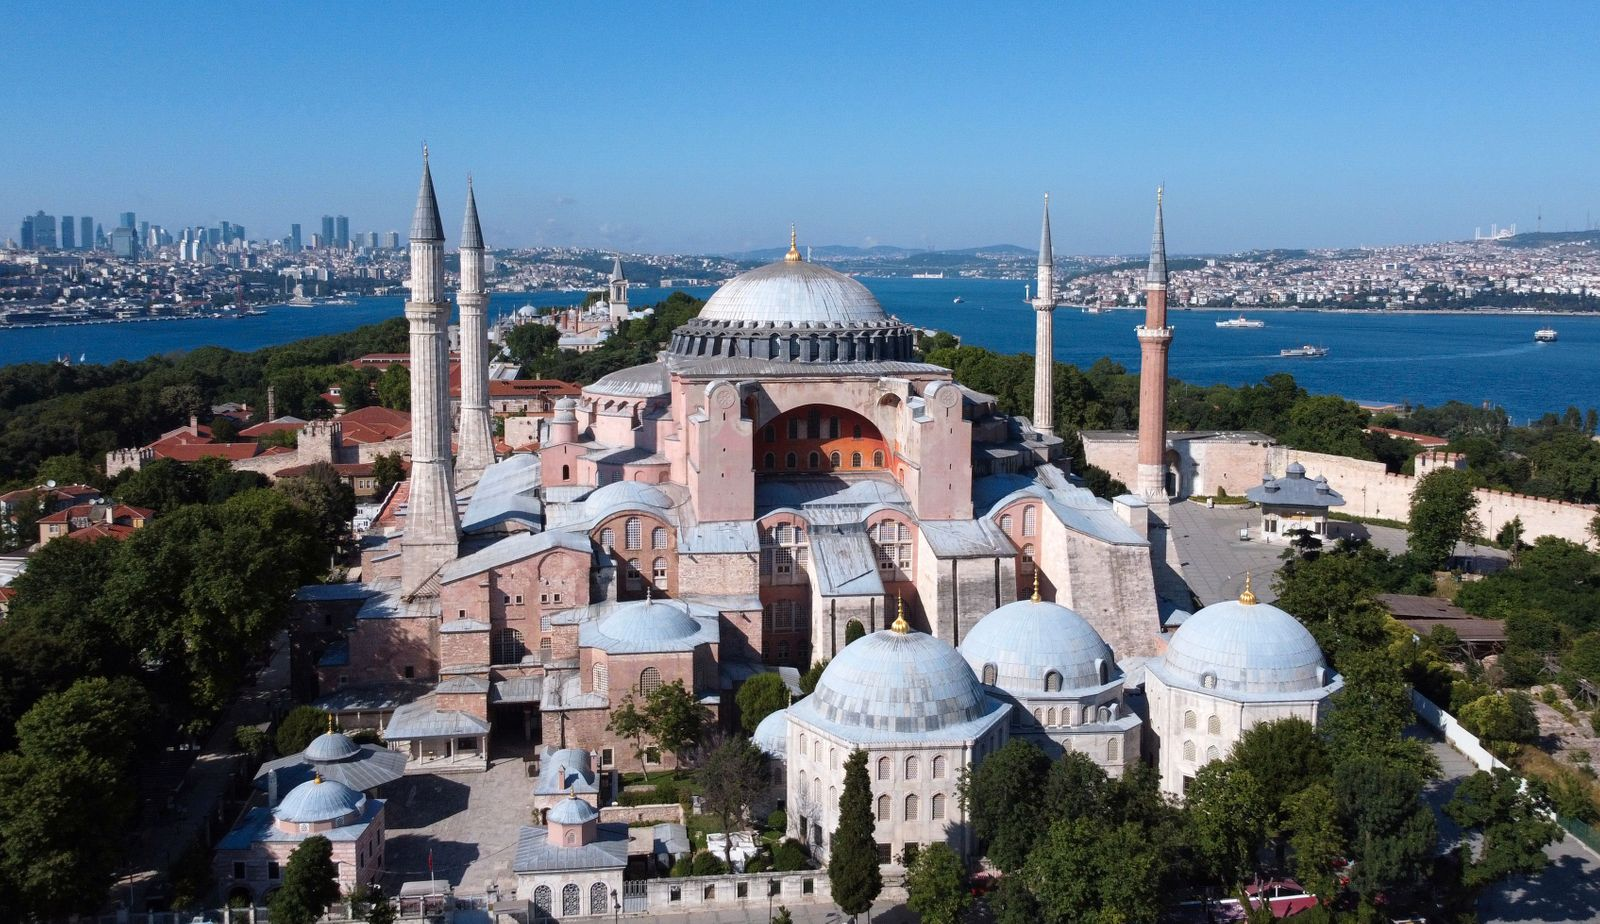 Byzantine-era monument of Hagia Sophia or Ayasofya is seen in Istanbul